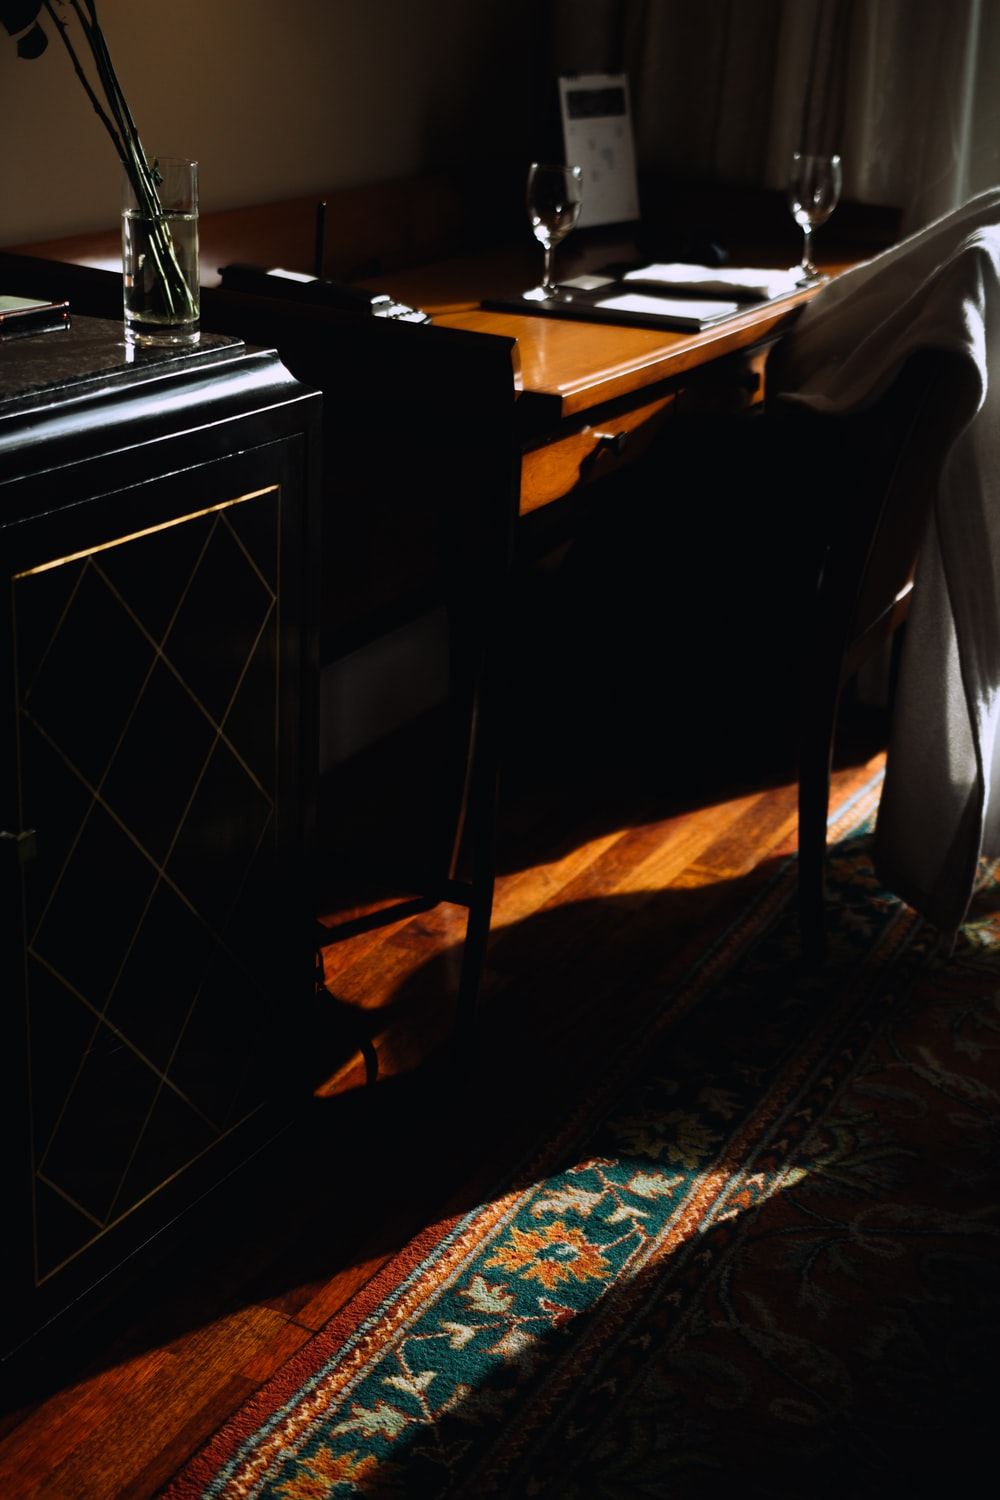 brown wooden table on black and white checkered floor